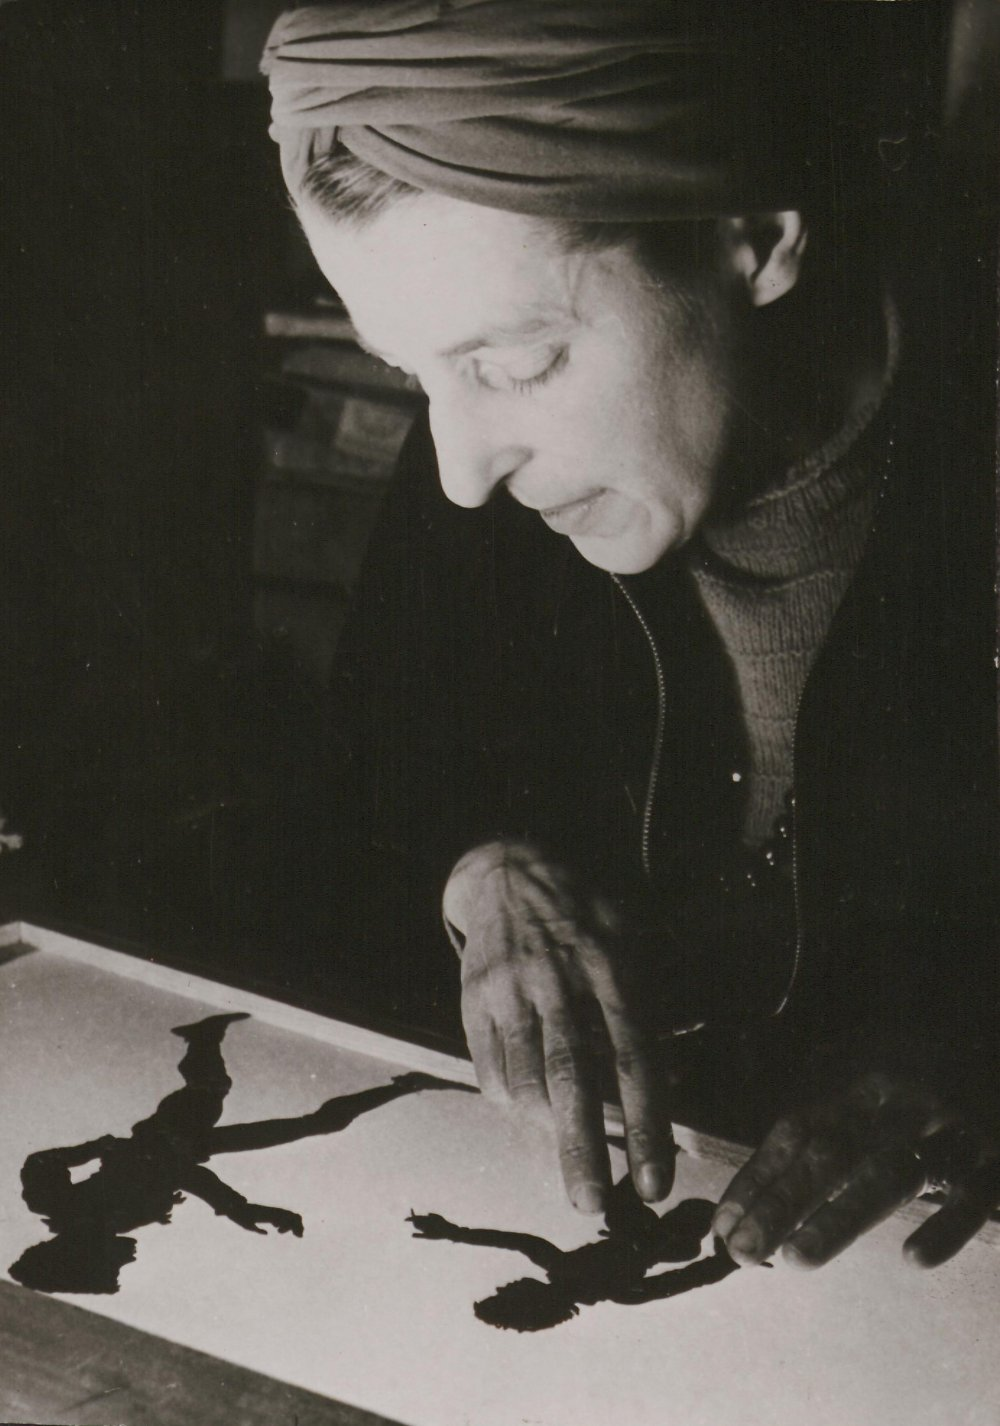 Lotte Reiniger animating two cut-out figures